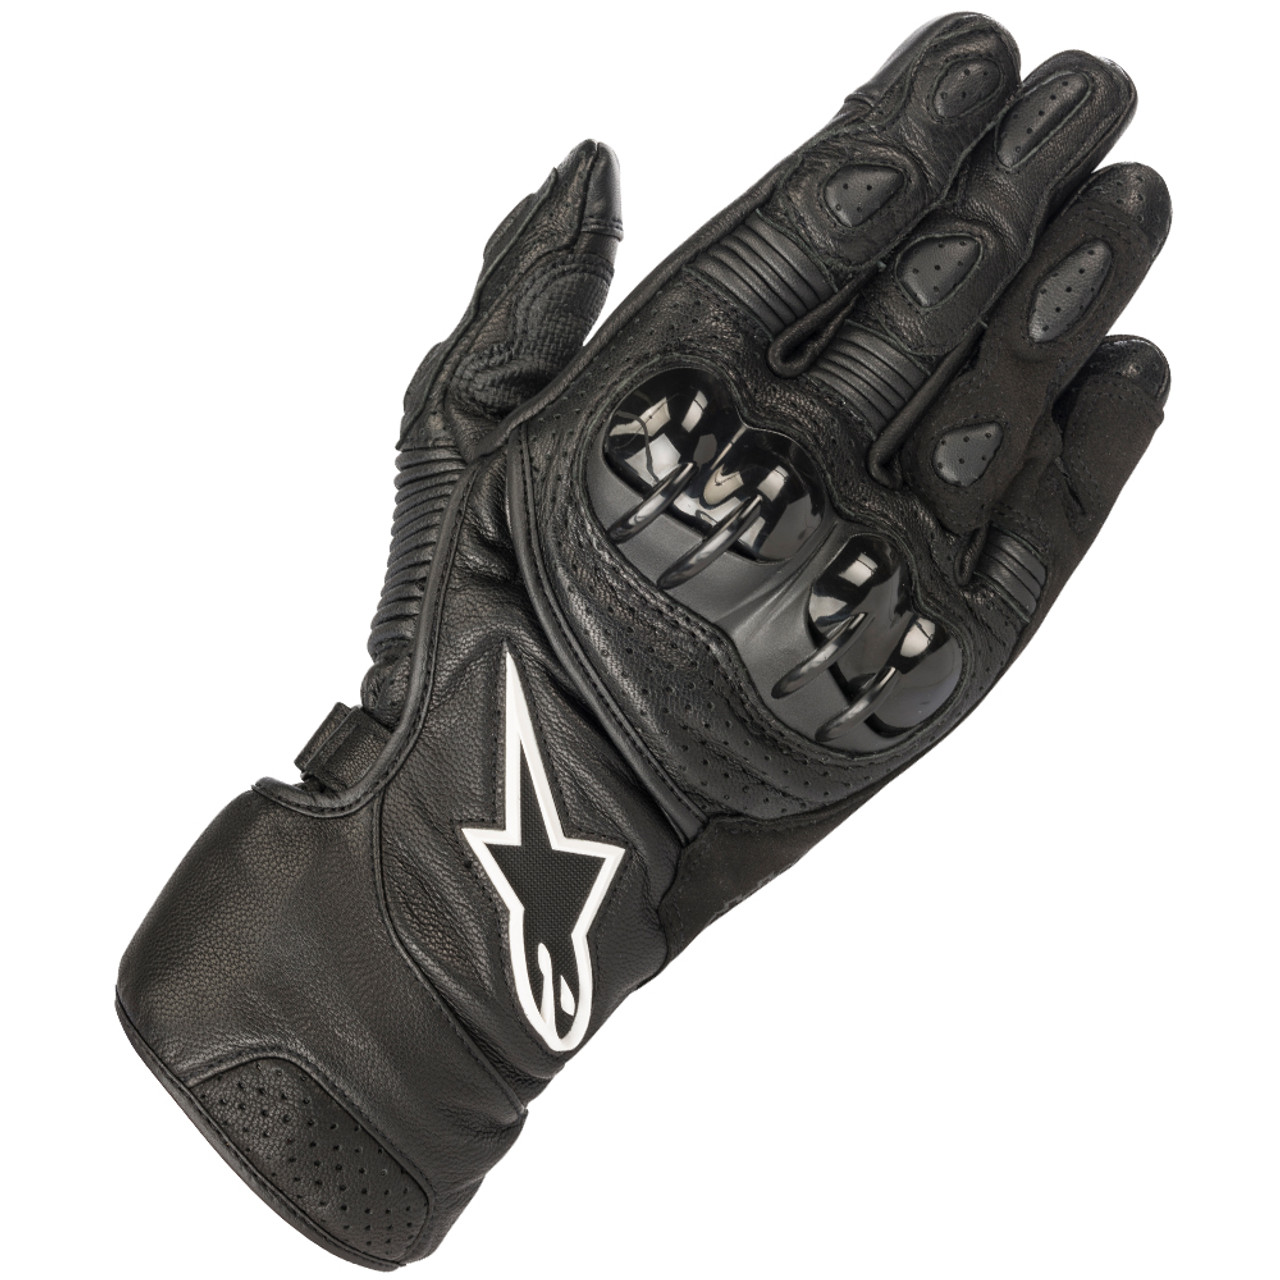 SIZE XL BLACK ALPINESTARS SP-2 SPORT TOURING MOTORCYCLE LEATHER GLOVES NEW